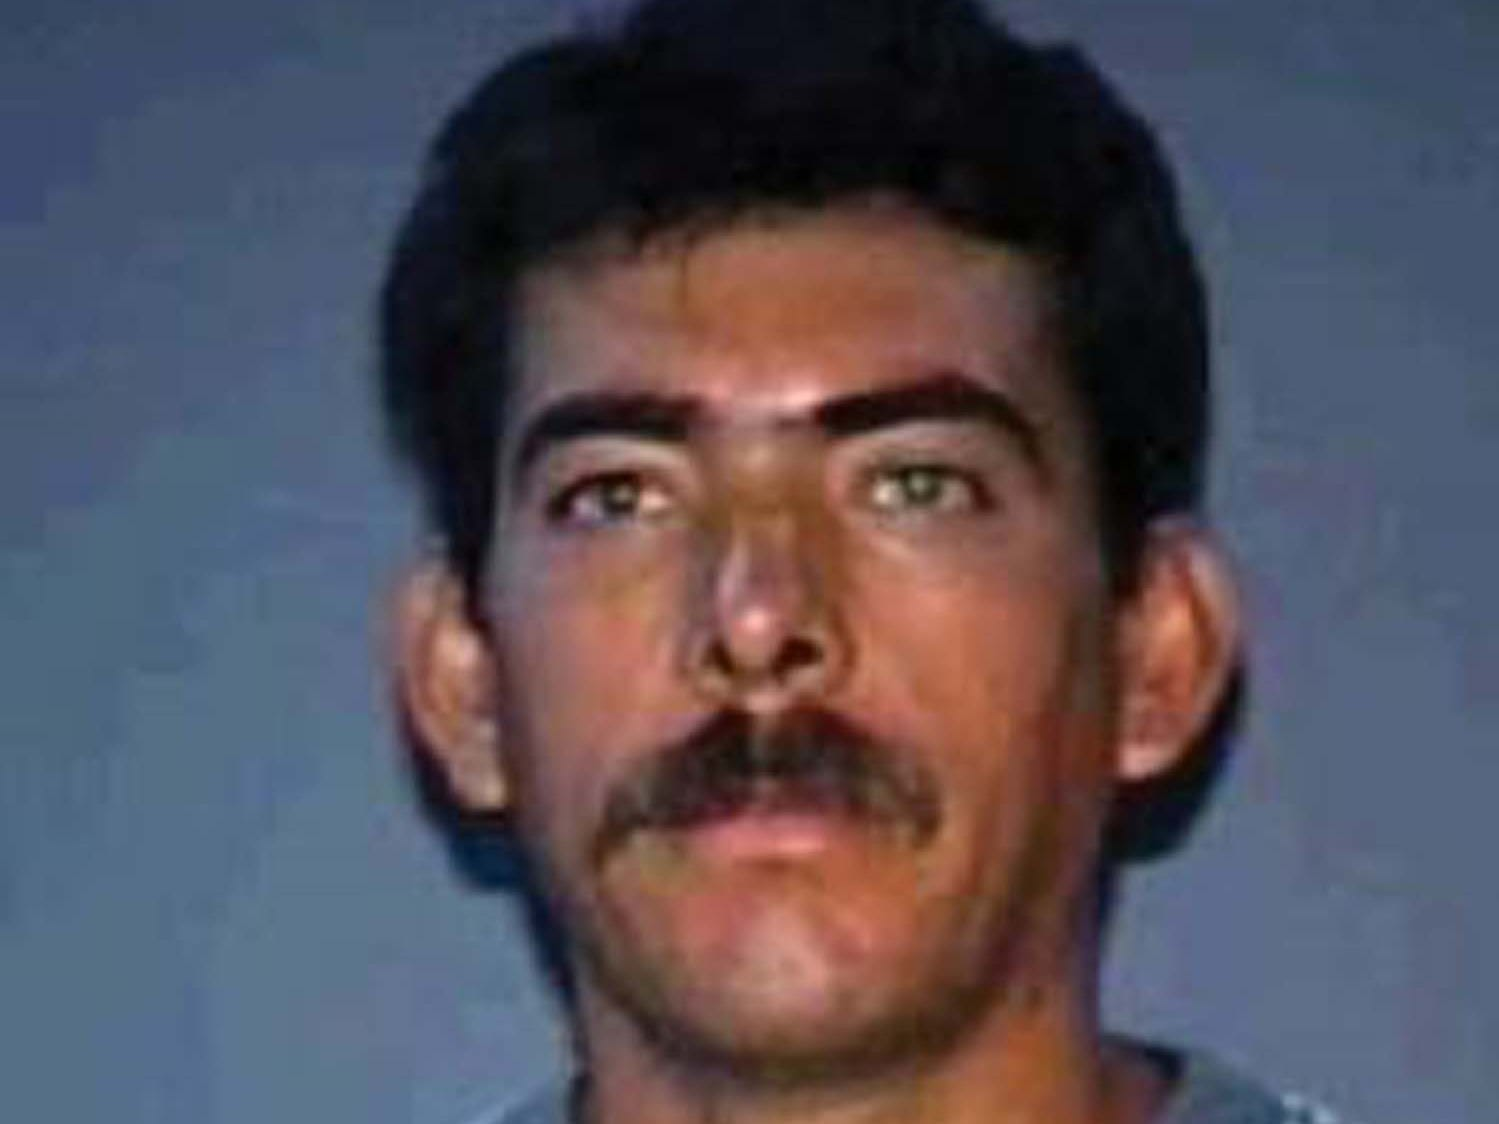 Jorge M. Ramirez, 52, is wanted by the Nevada Department of Public Safety's Investigation Division for possession of a stolen motor vehicle. He is 5 feet 6 inches tall and weighs 140 pounds. He is known to abuse drugs and is possibly armed. He also has ties in California.